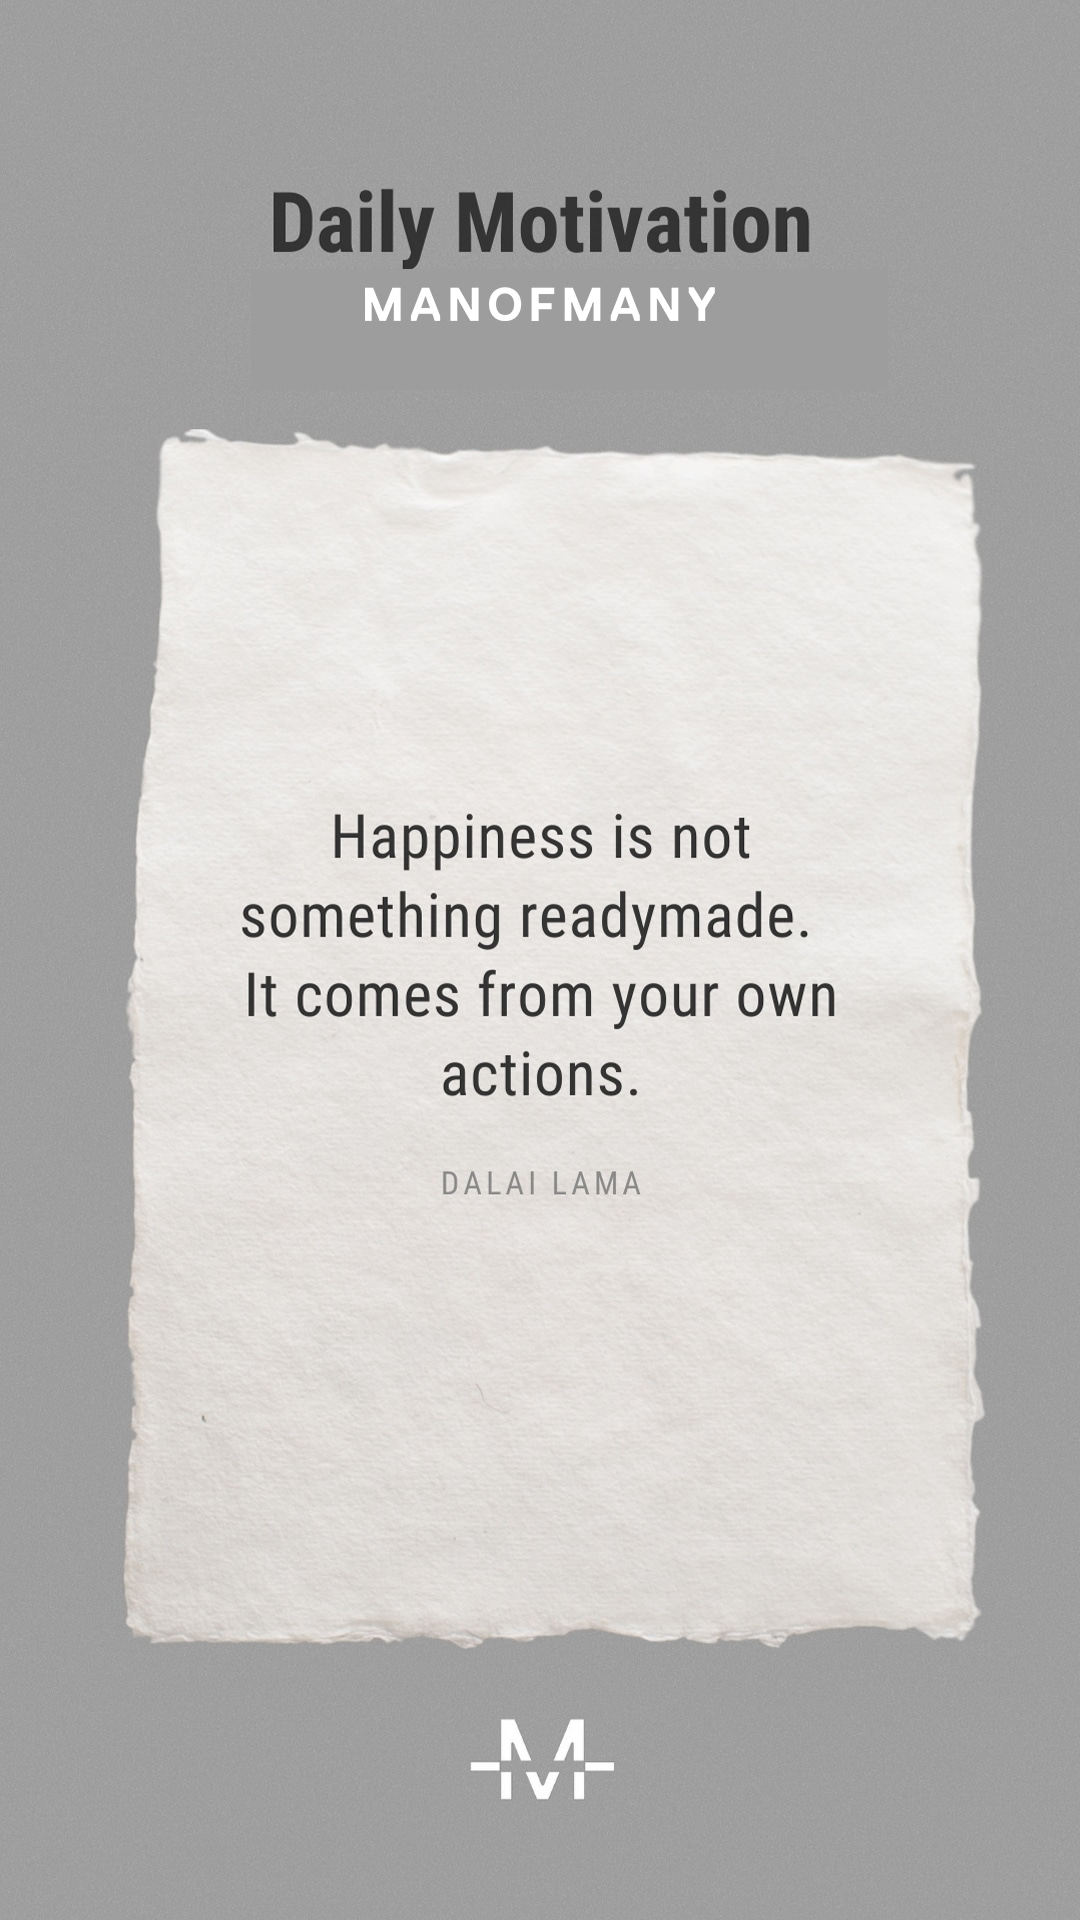 Happiness is not something readymade. It comes from your own actions. –Dalai Lama quote